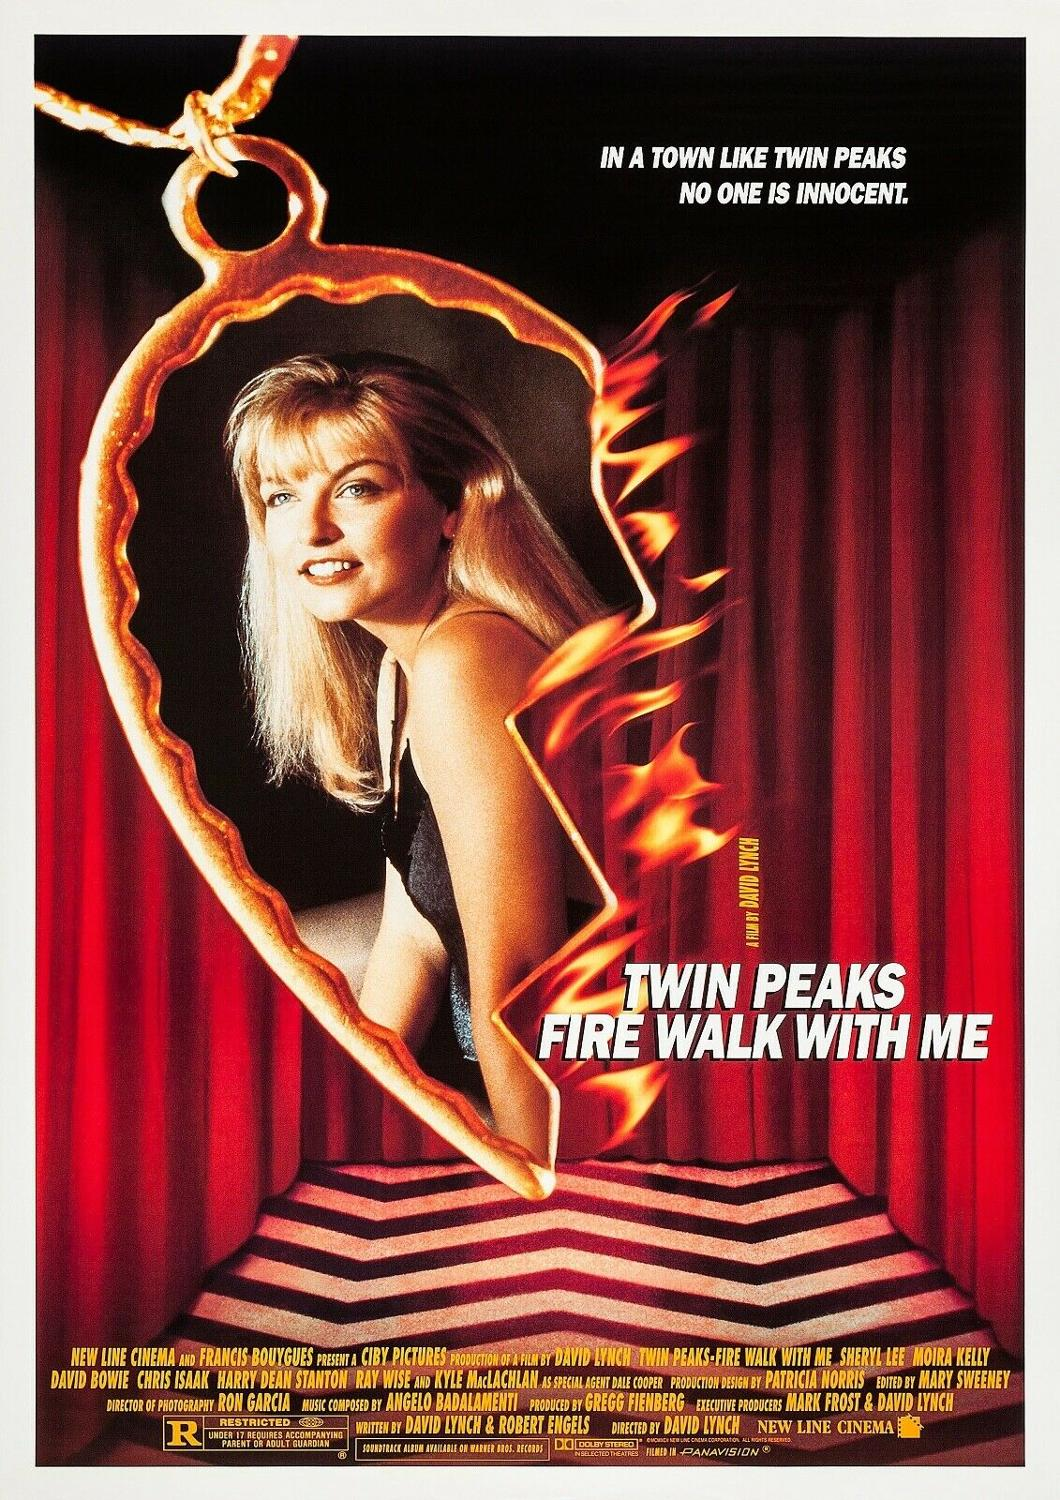 TWIN PEAKS FIRE WALK WITH ME 1992 David Lynch Movie Cinema Restored Wall Sticker Silk Fabric Poster Art Indoor Decor Bright image